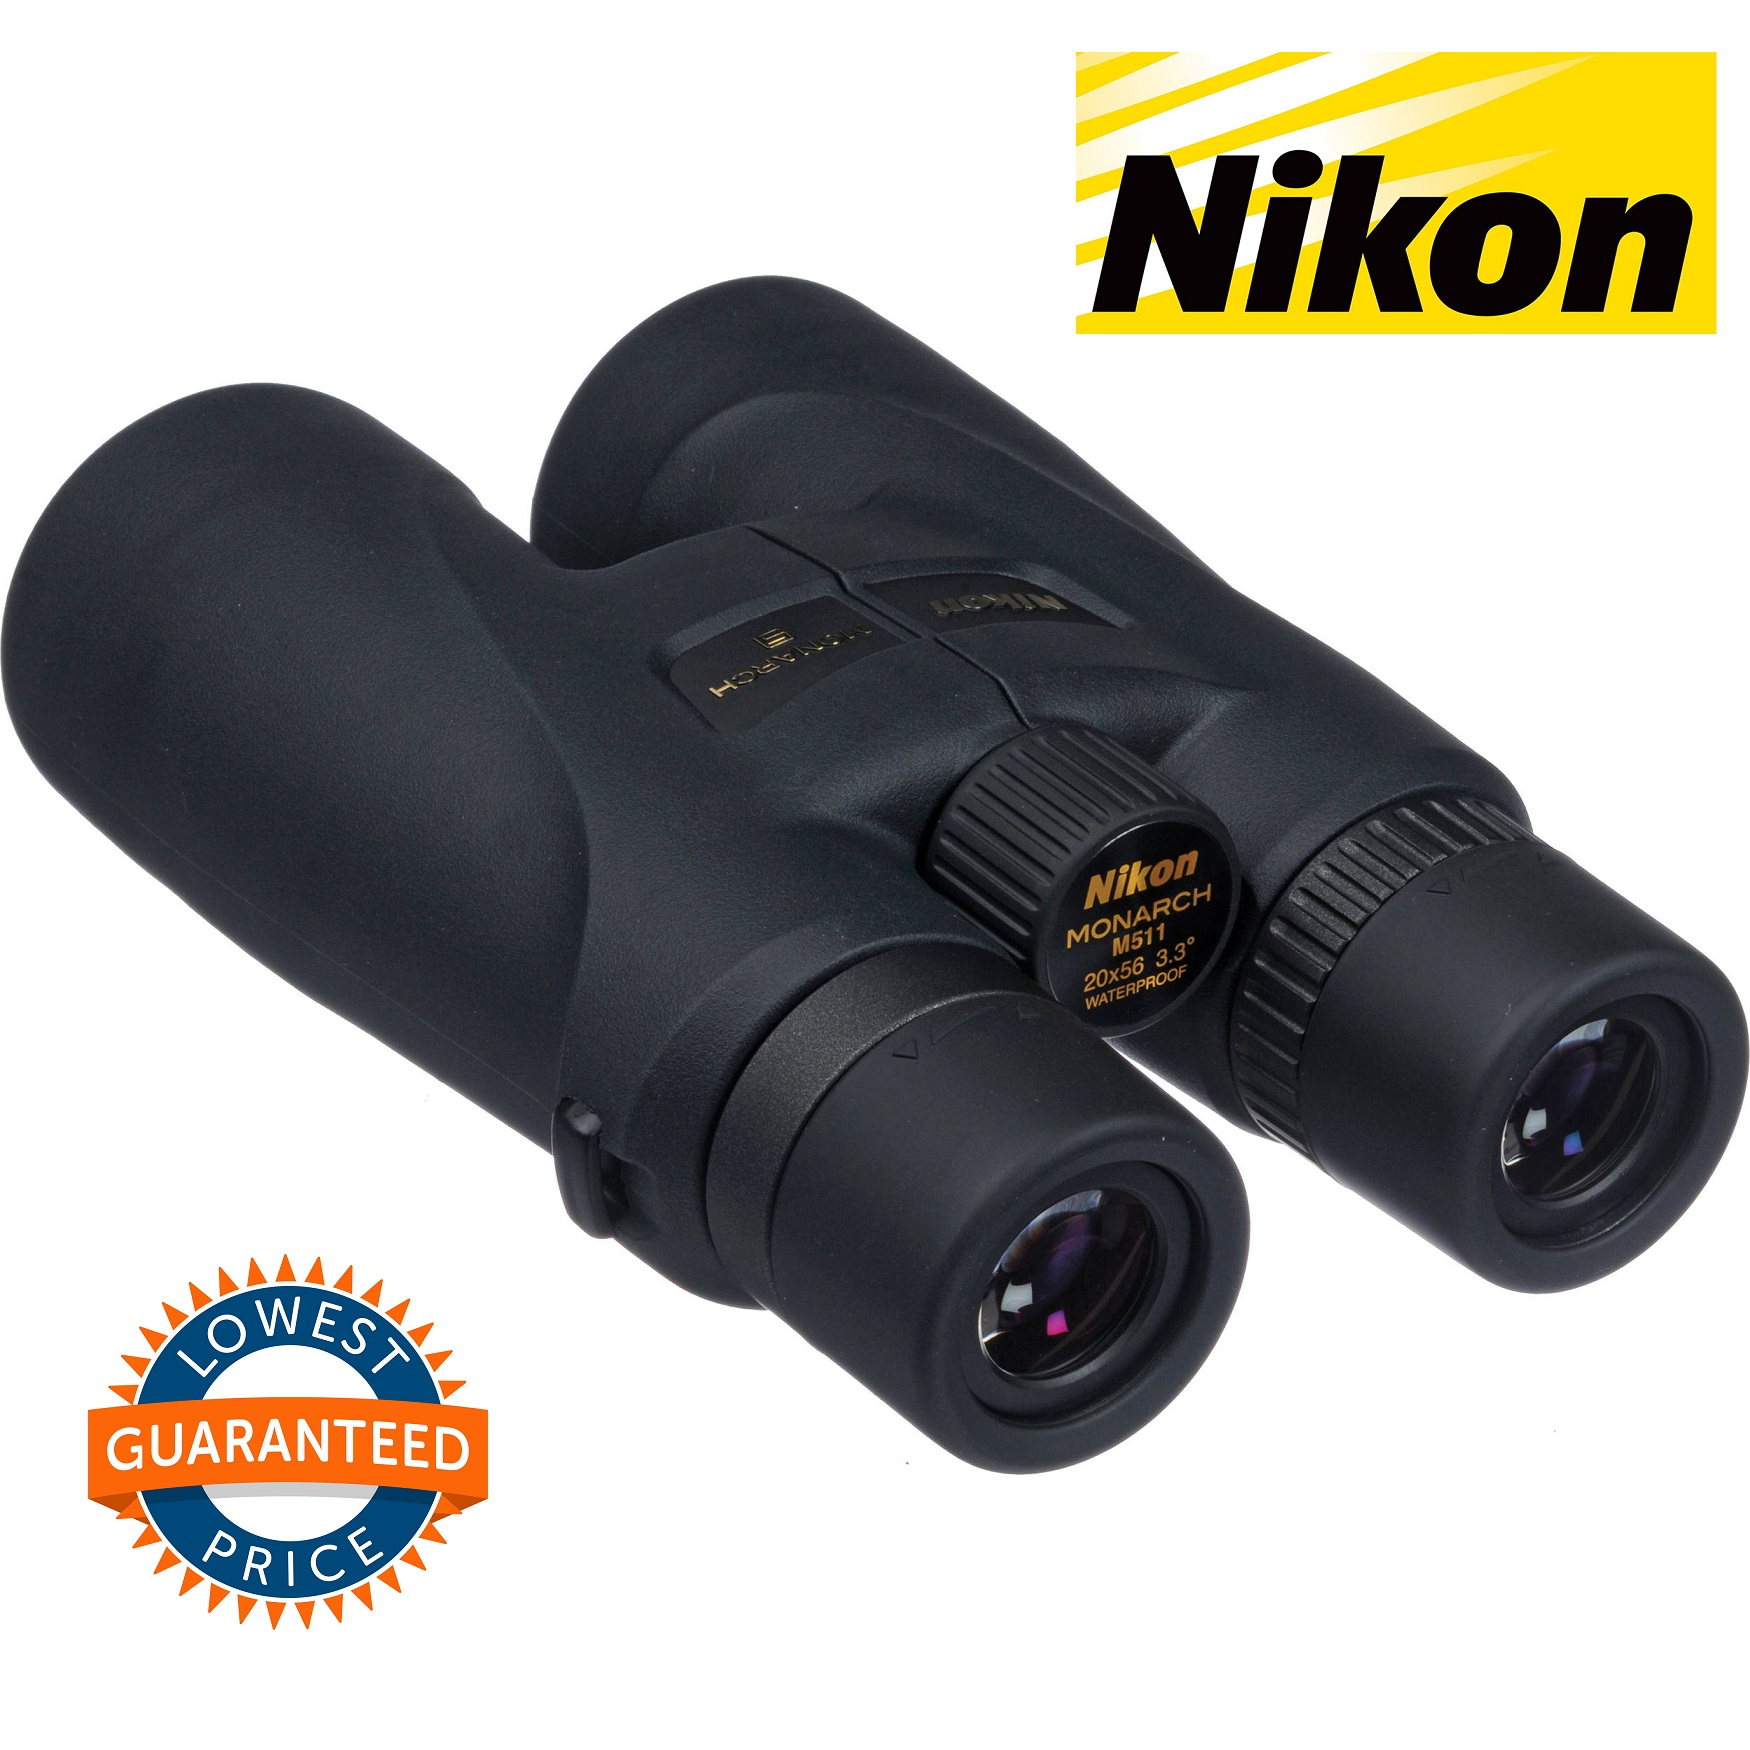 Nikon 20x56 Monarch 5 Binocular (Black)